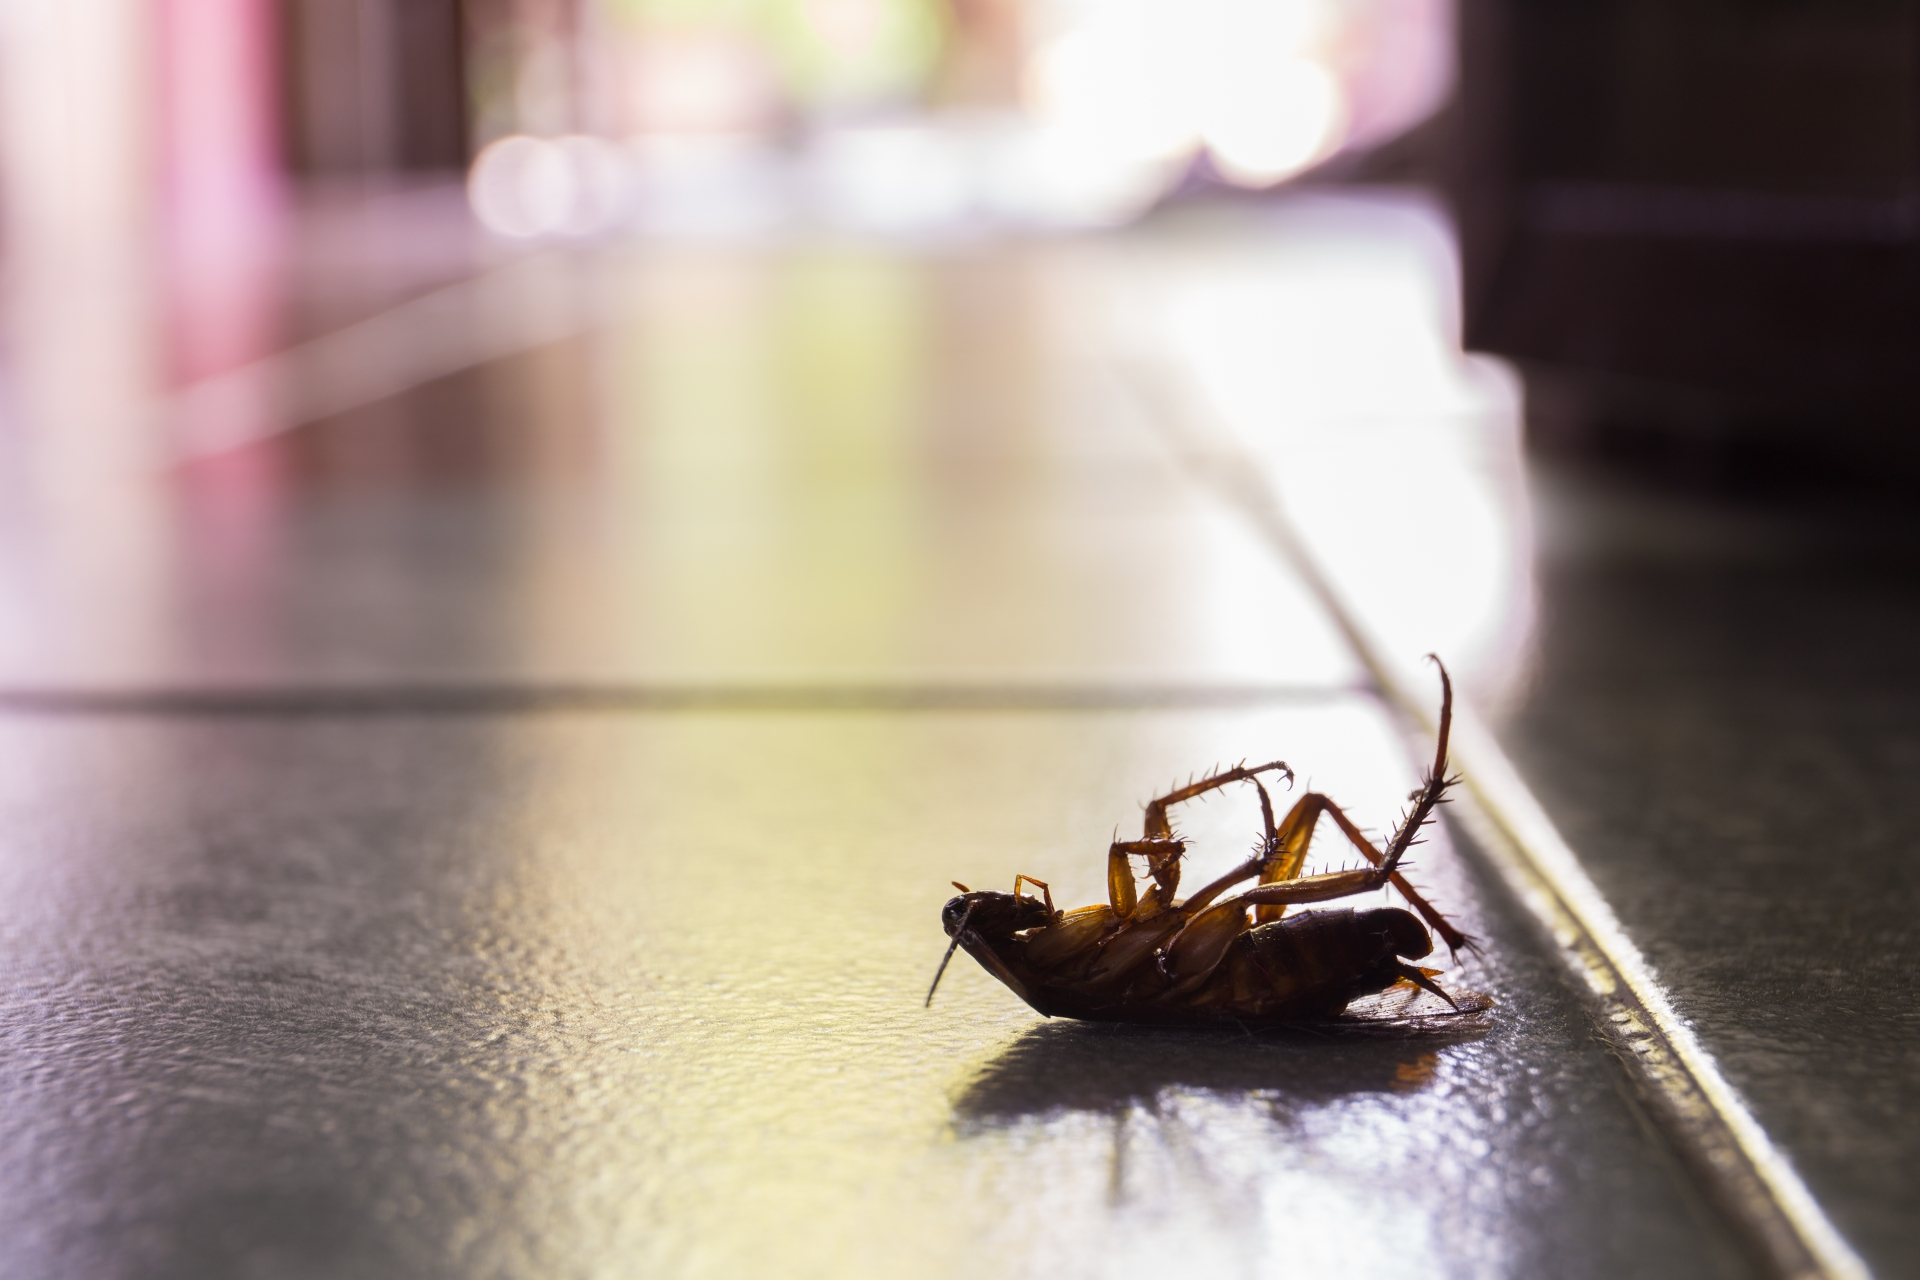 Cockroach Control, Pest Control in Southfleet, Meopham, DA13. Call Now 020 8166 9746